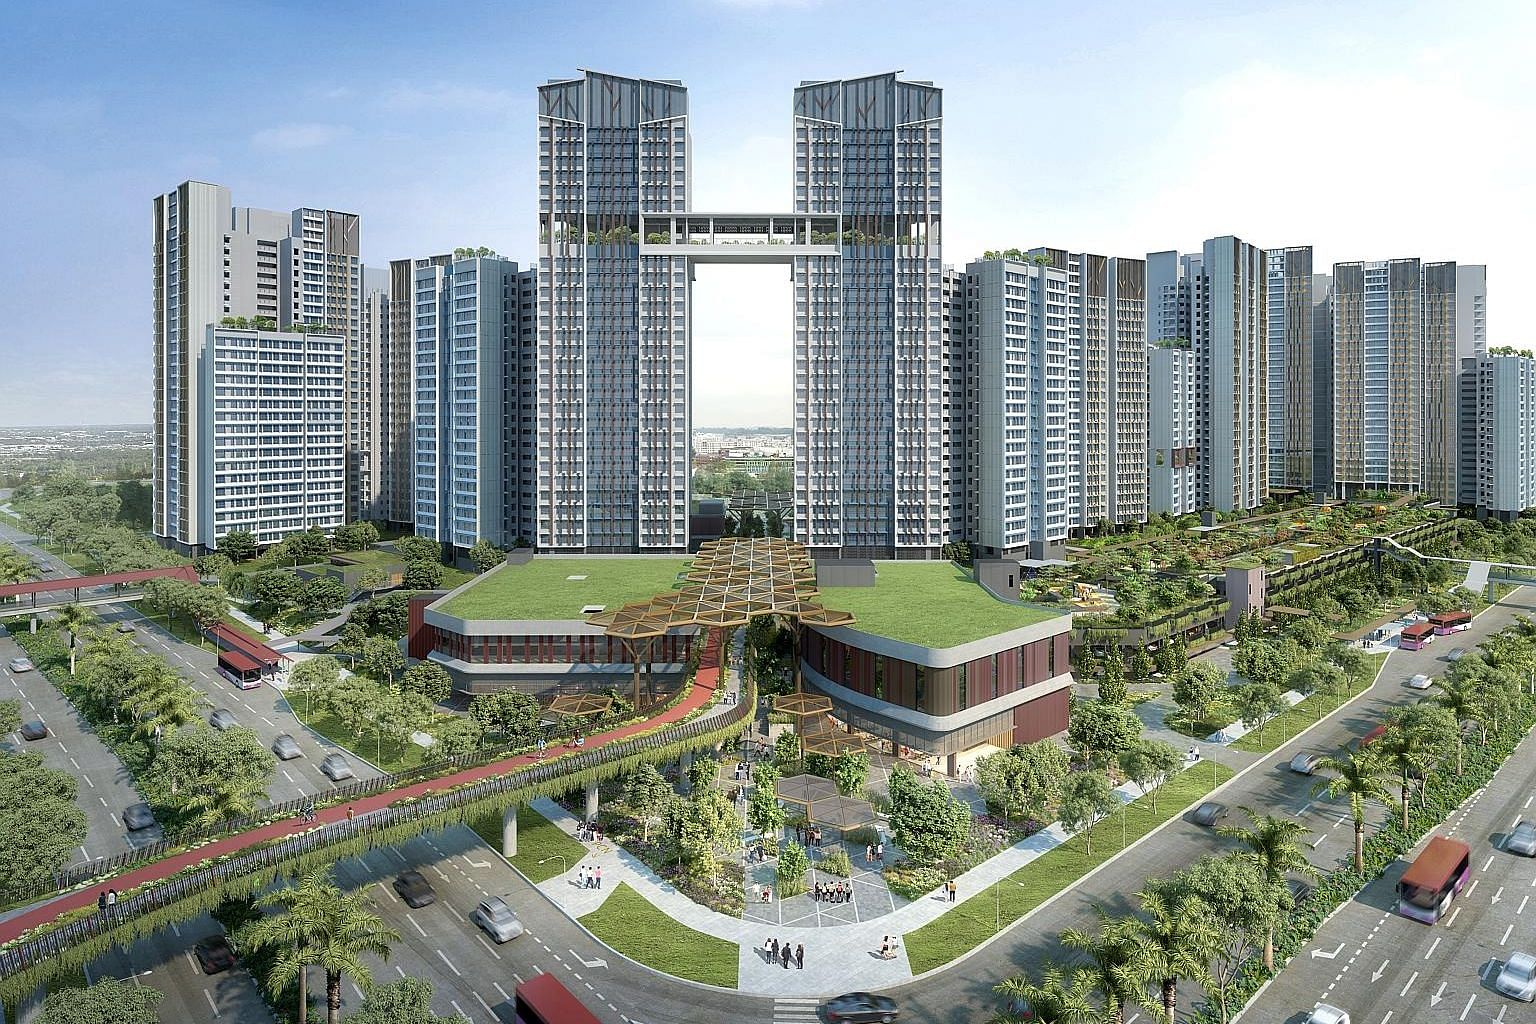 An artist's impression of UrbanVille @ Woodlands, which will offer 1,785 two-room flexi, three-room, four-room and five-room flats. It is the biggest Build-To-Order project in yesterday's launch.